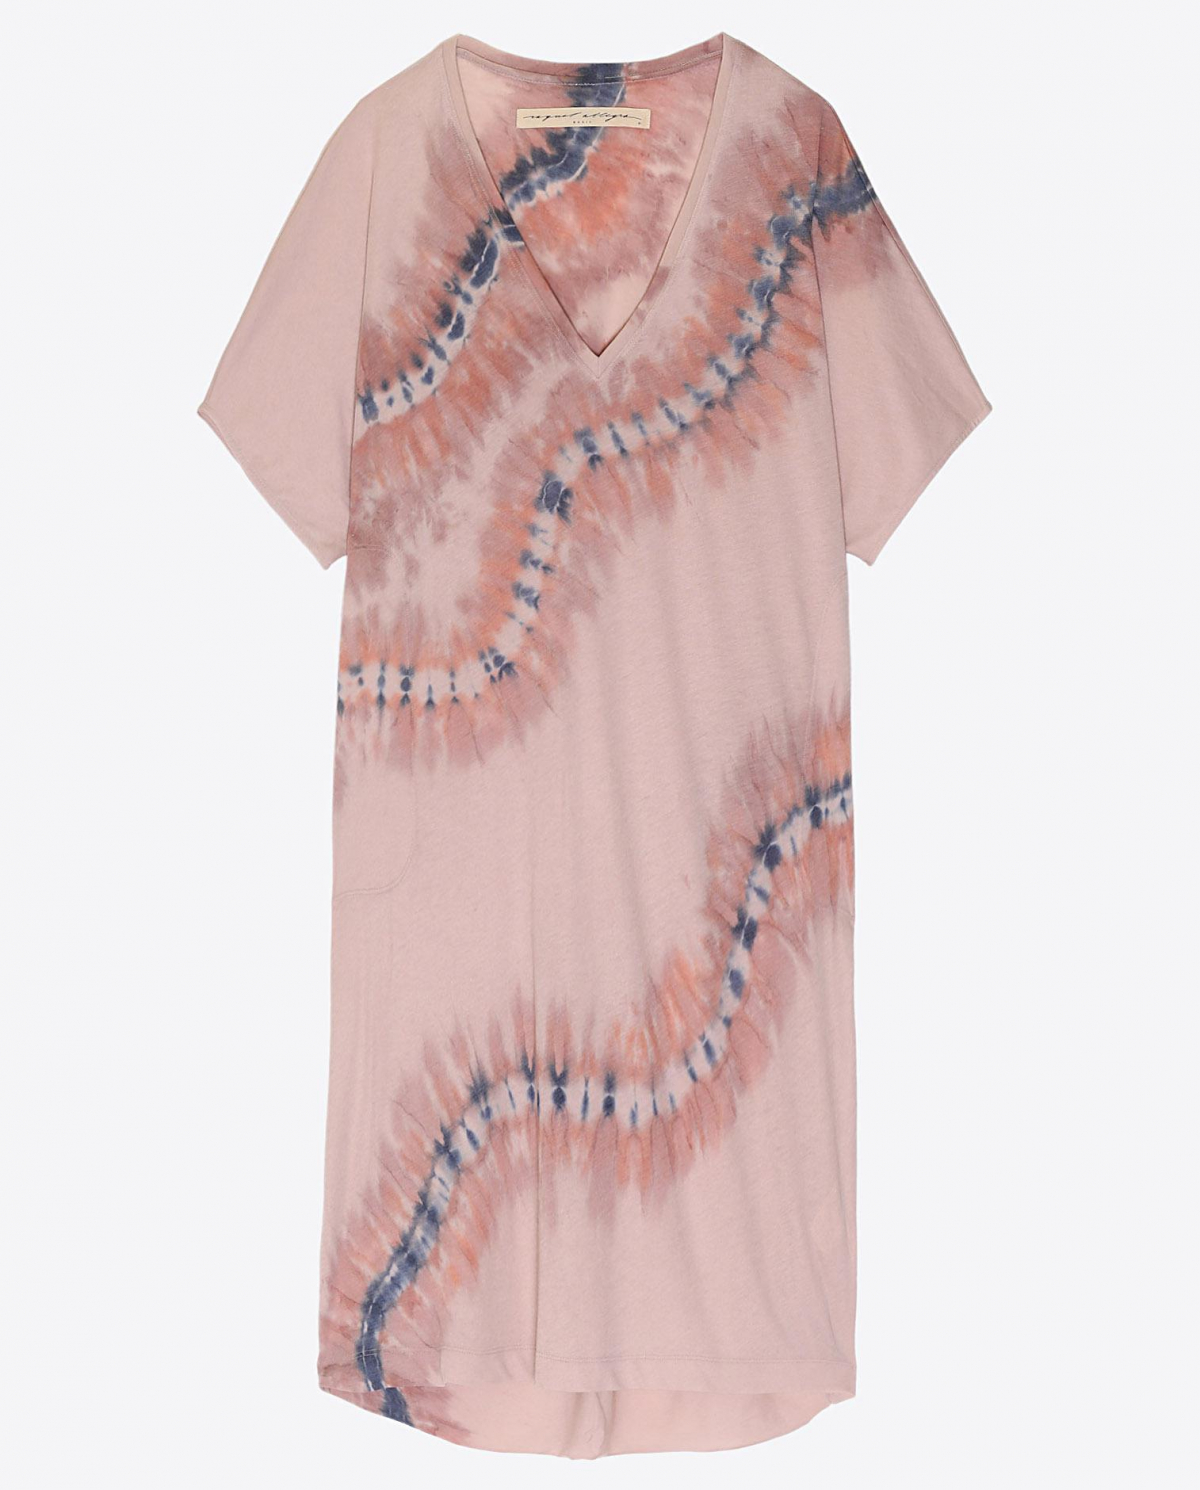 Raquel Allegra Pré-Collection V - Neck Dress - Tie & Dye Nude